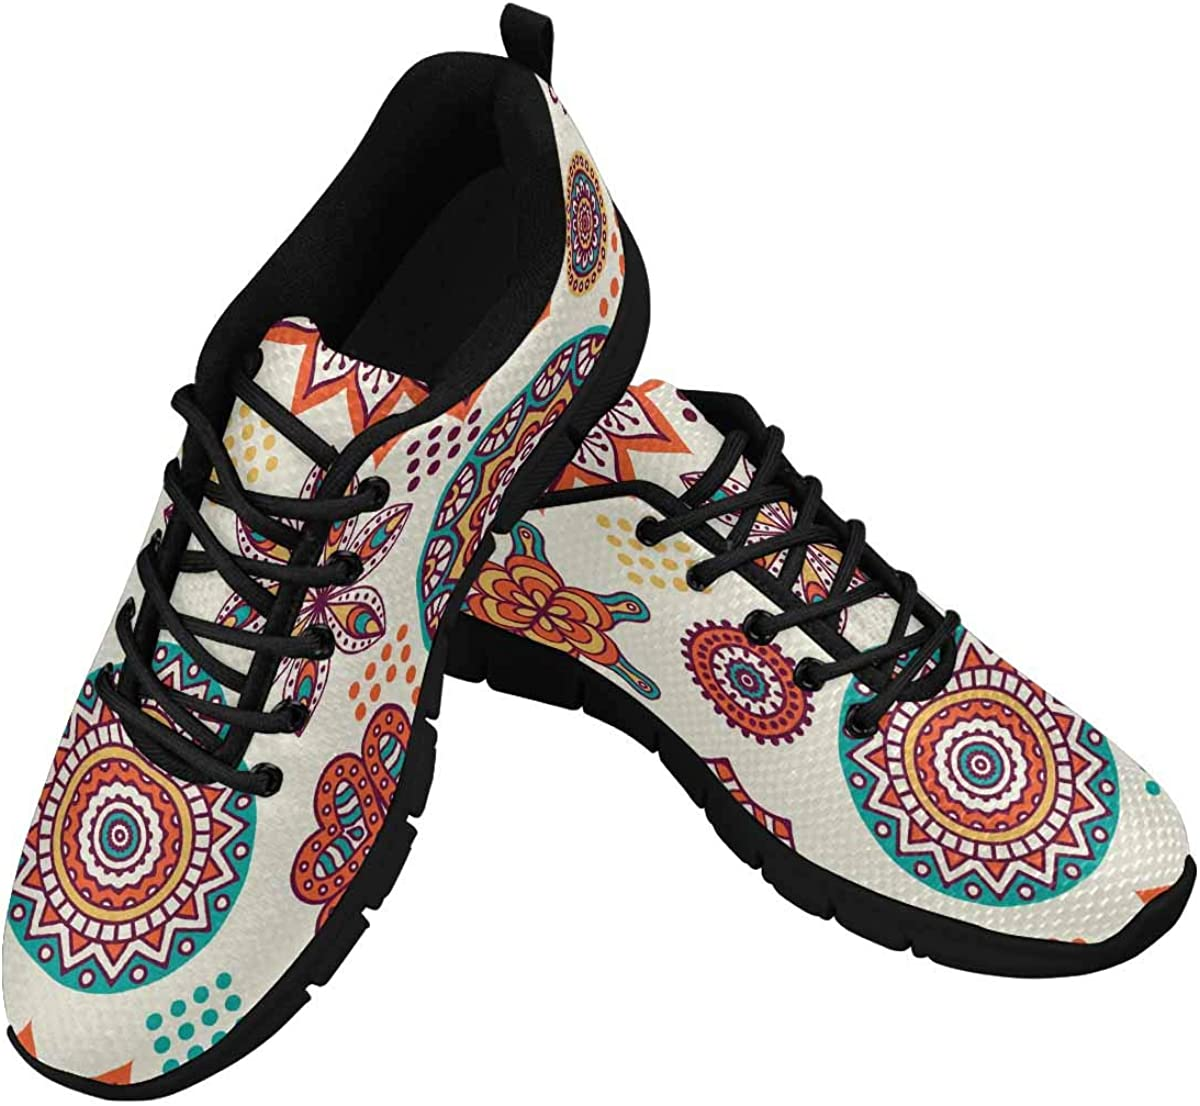 INTERESTPRINT Vintage Decorative Elements Women's Lightweight Athletic Casual Gym Sneakers